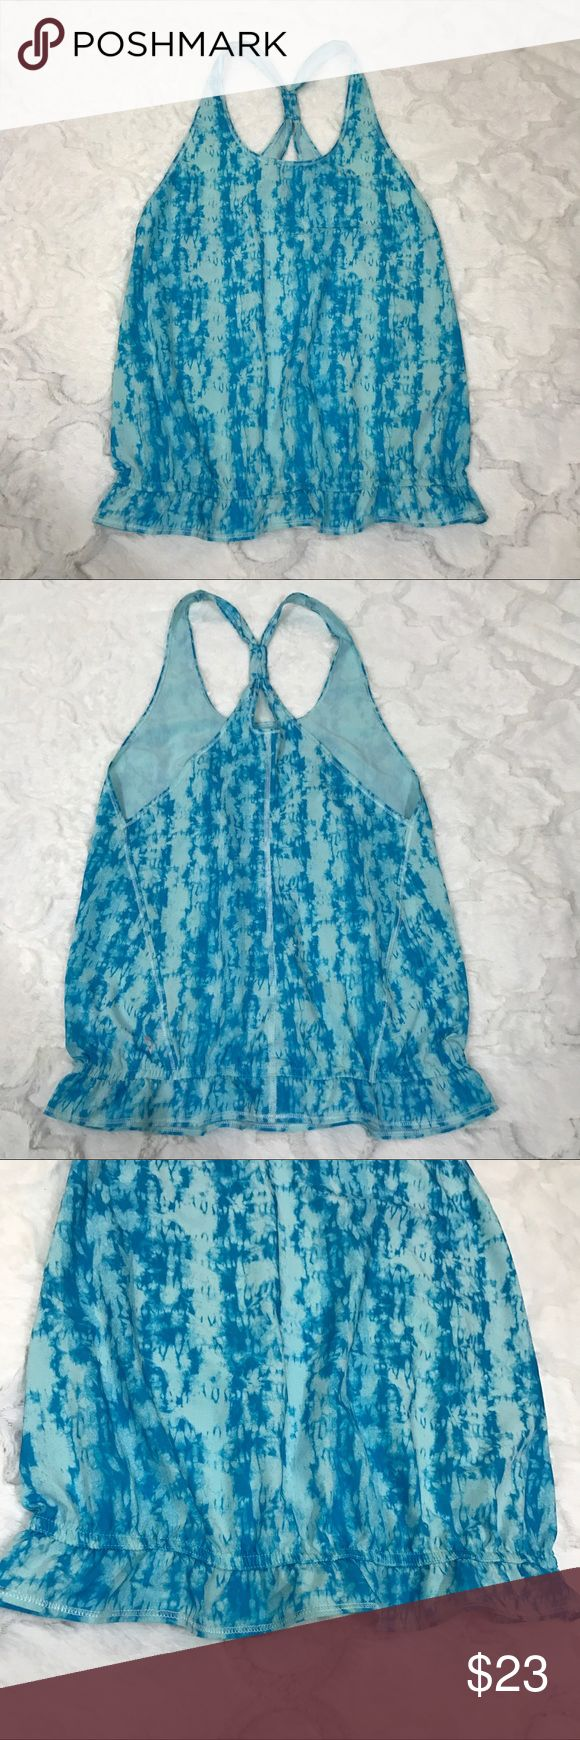 Ivivva razorback tank top girls size 12 Gently used. No stains or tears Ivivva Shirts & Tops Tank Tops